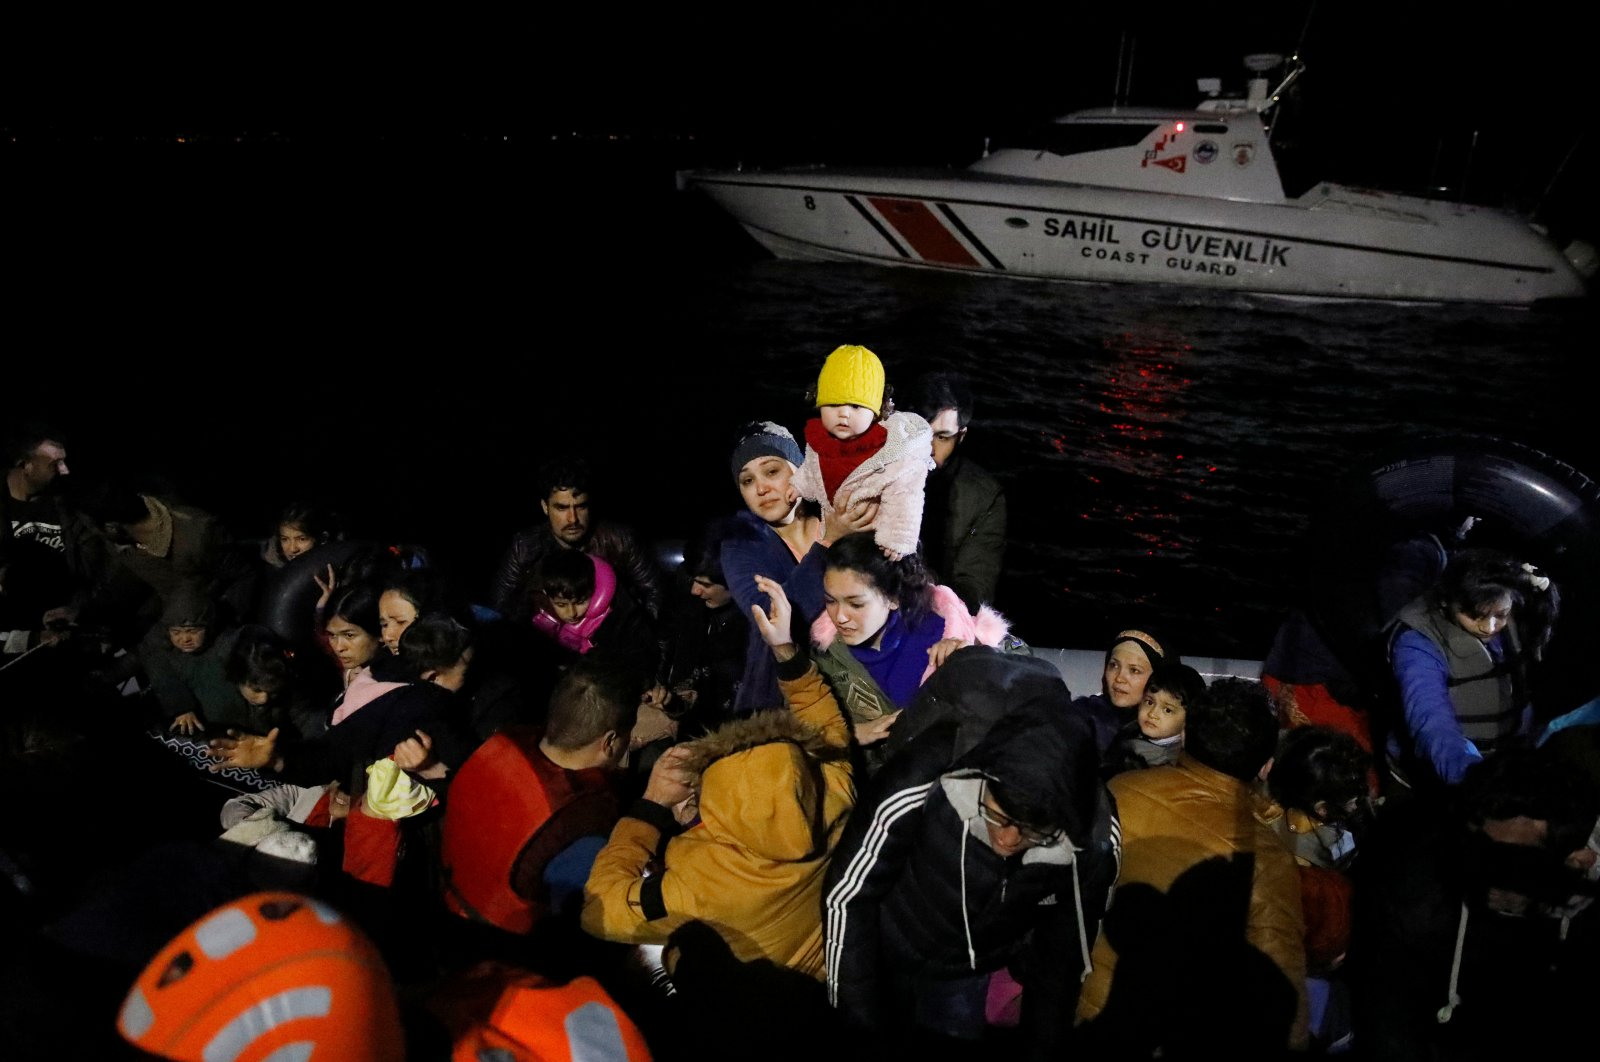 Migrants board a Turkish coast guard vessel following a failed attempt to cross to the Greek island of Lesbos, on the waters of the North Aegean Sea, off the shores of Çanakkale, Turkey, March 6, 2020. (Reuters Photo)